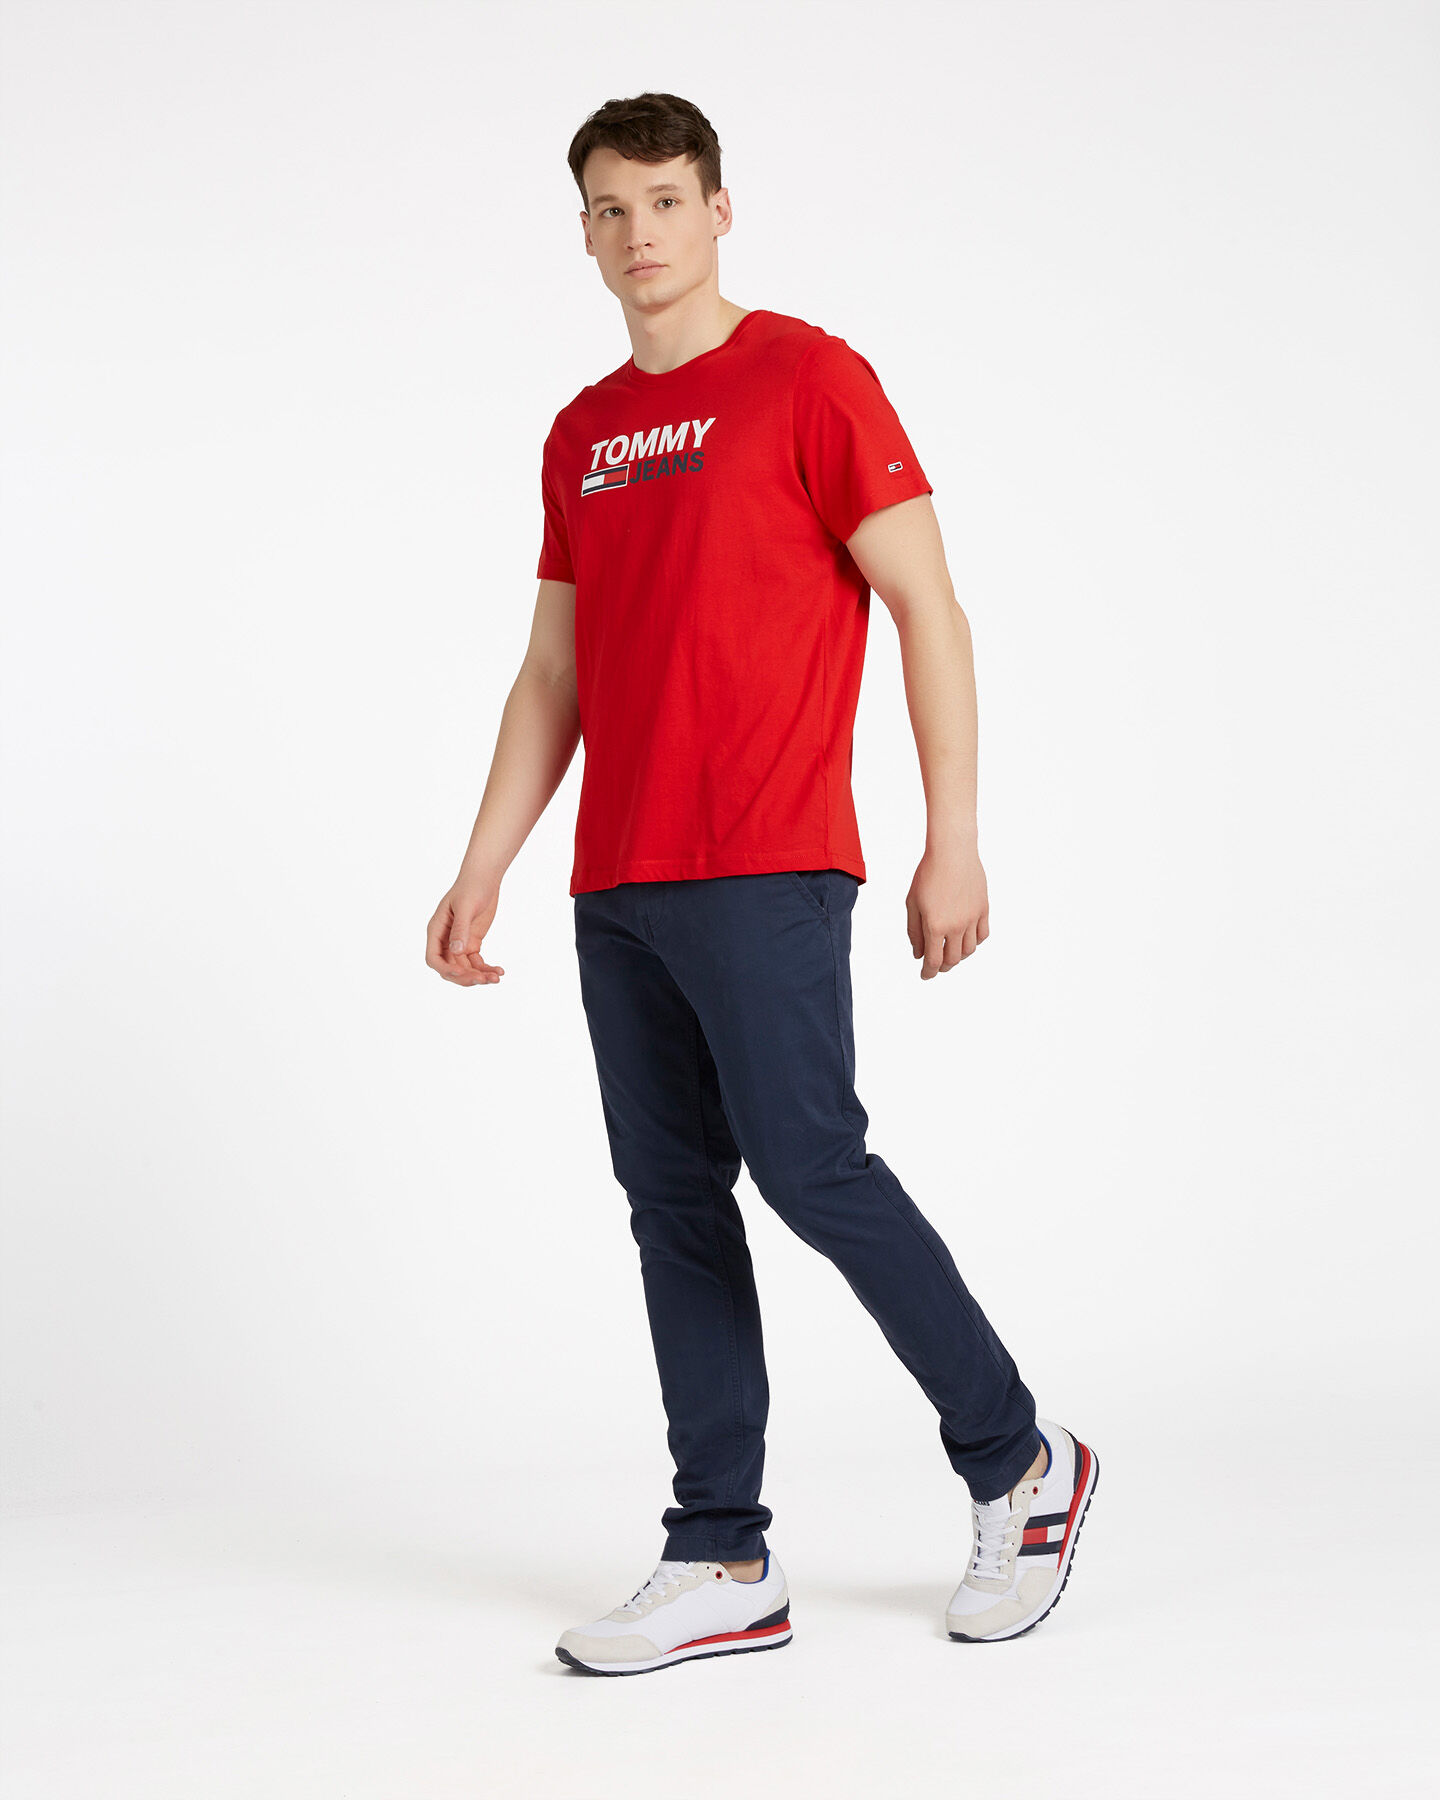 T-Shirt TOMMY HILFIGER CORP LOGO M S4088732 scatto 3